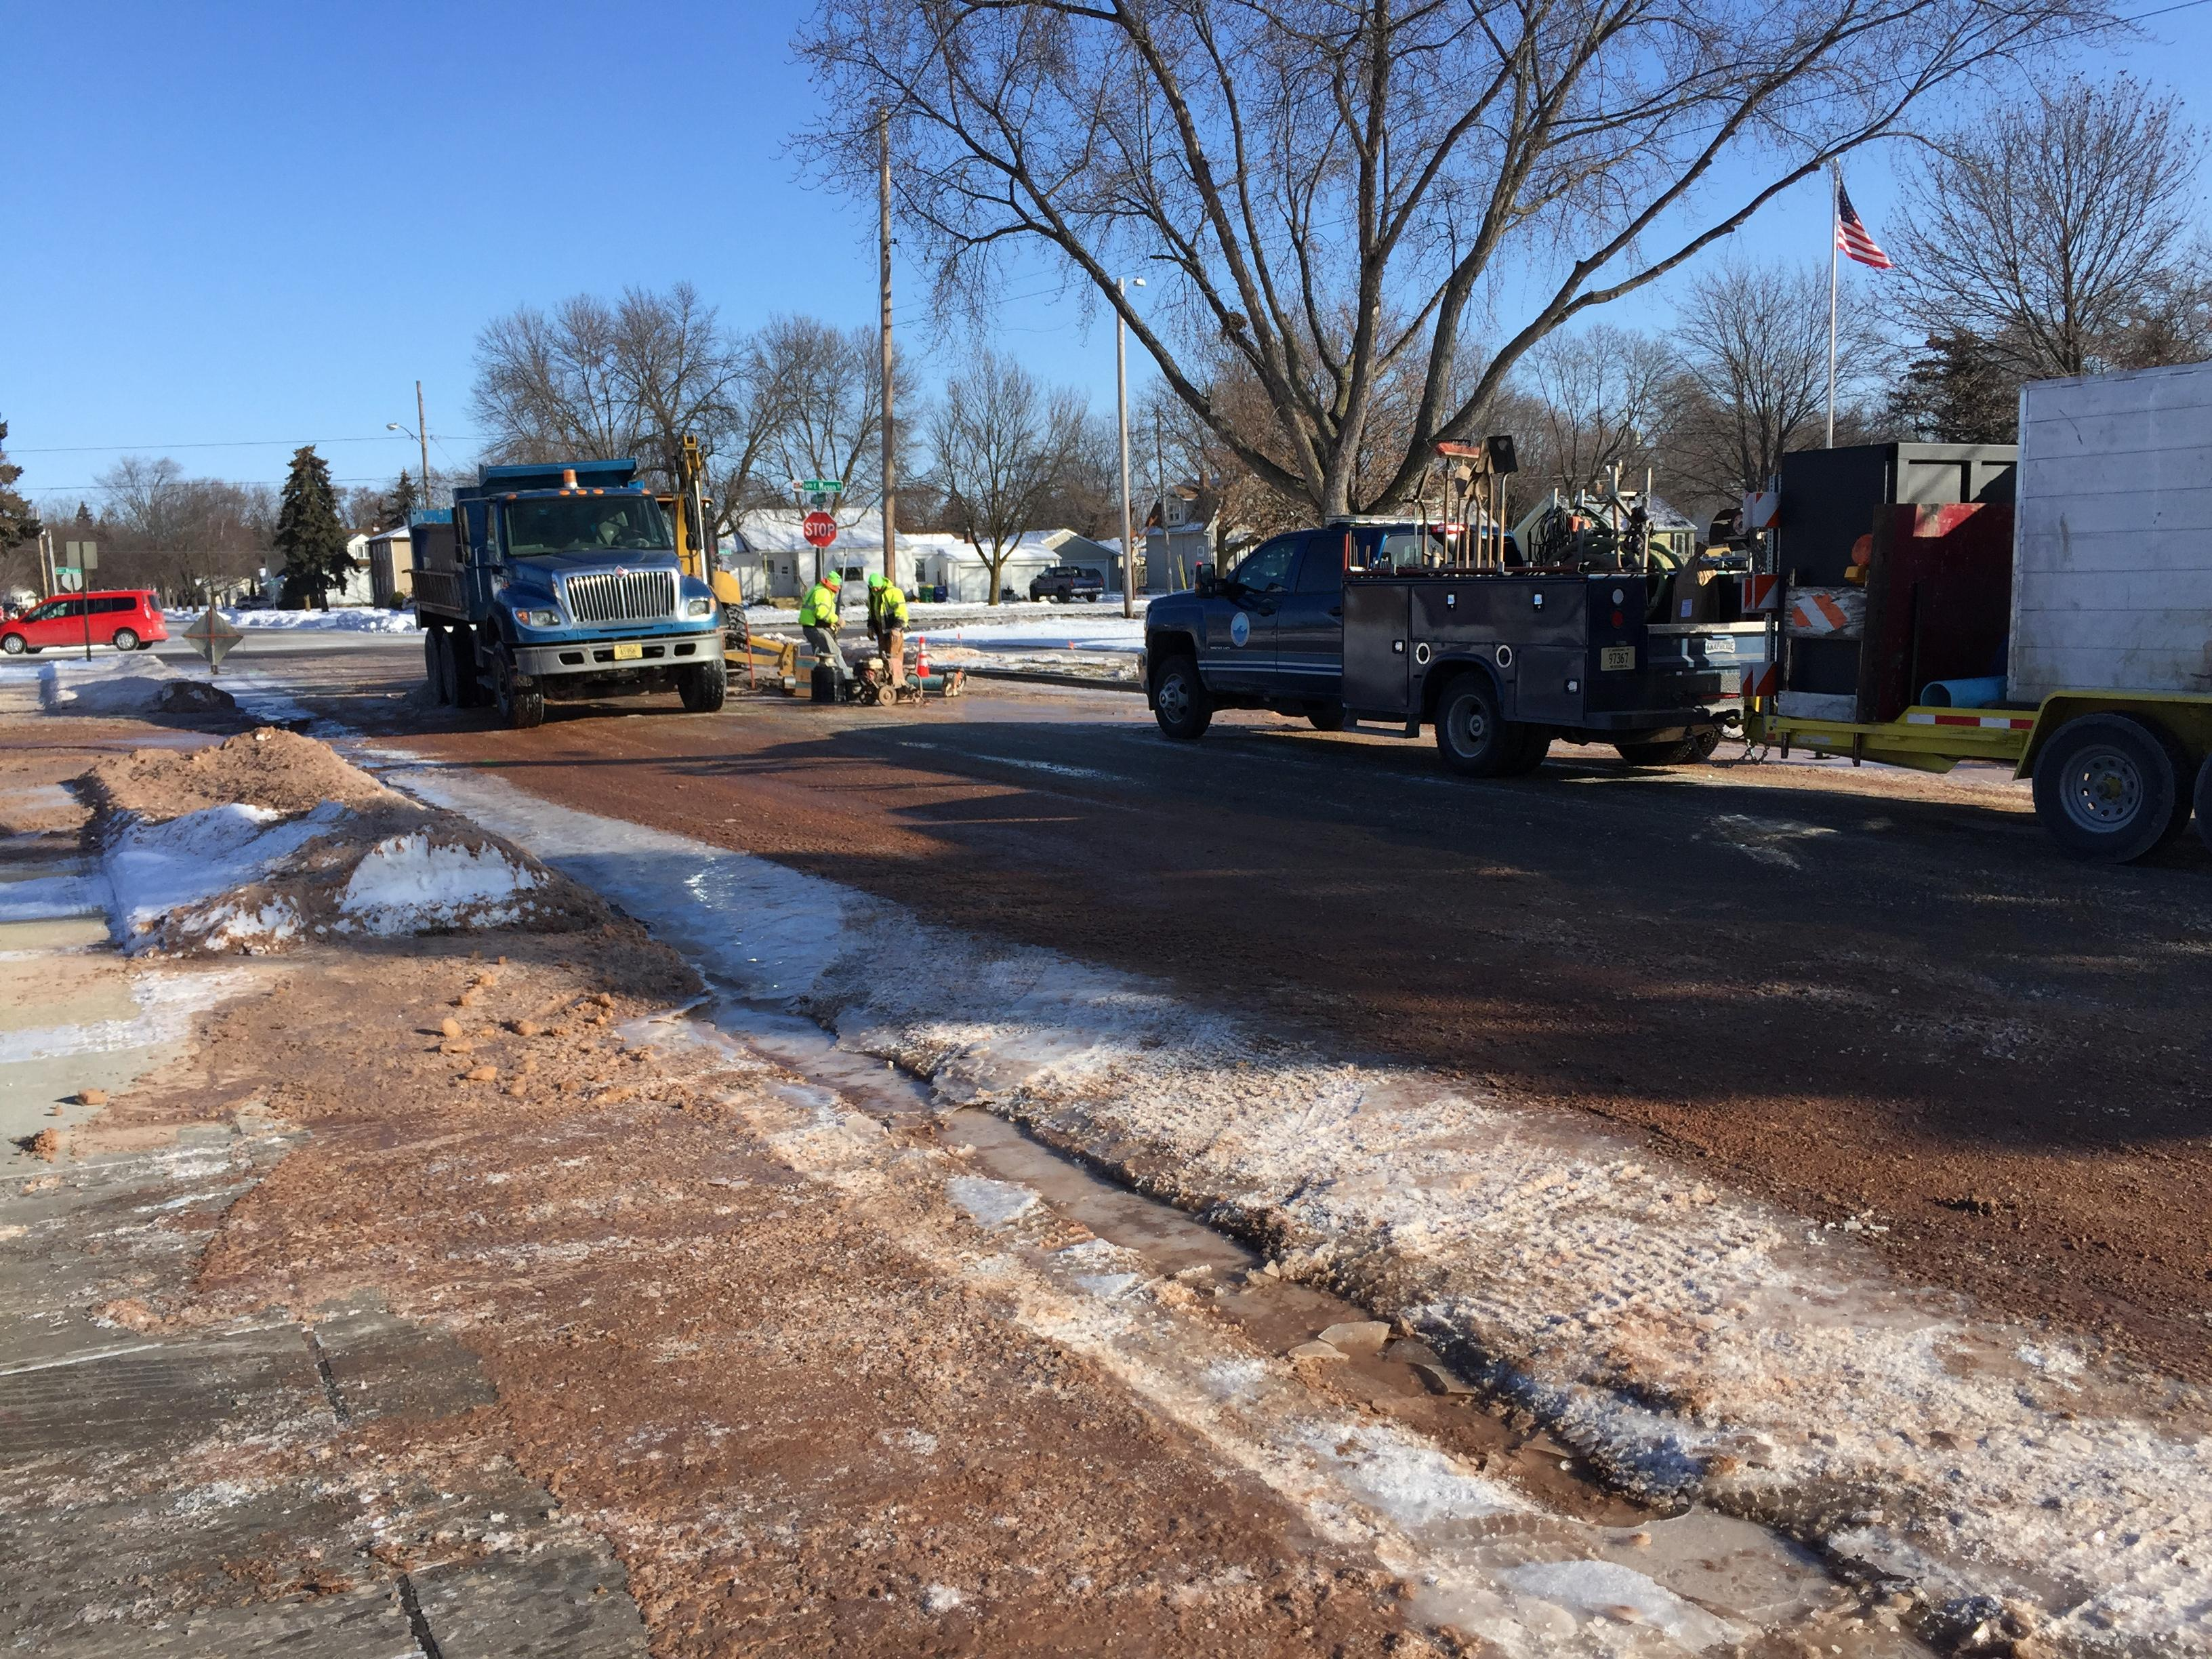 Water main break at West Mason Street and Heyrman Street in Green Bay, December 26, 2017 (WLUK/Eric Peterson)